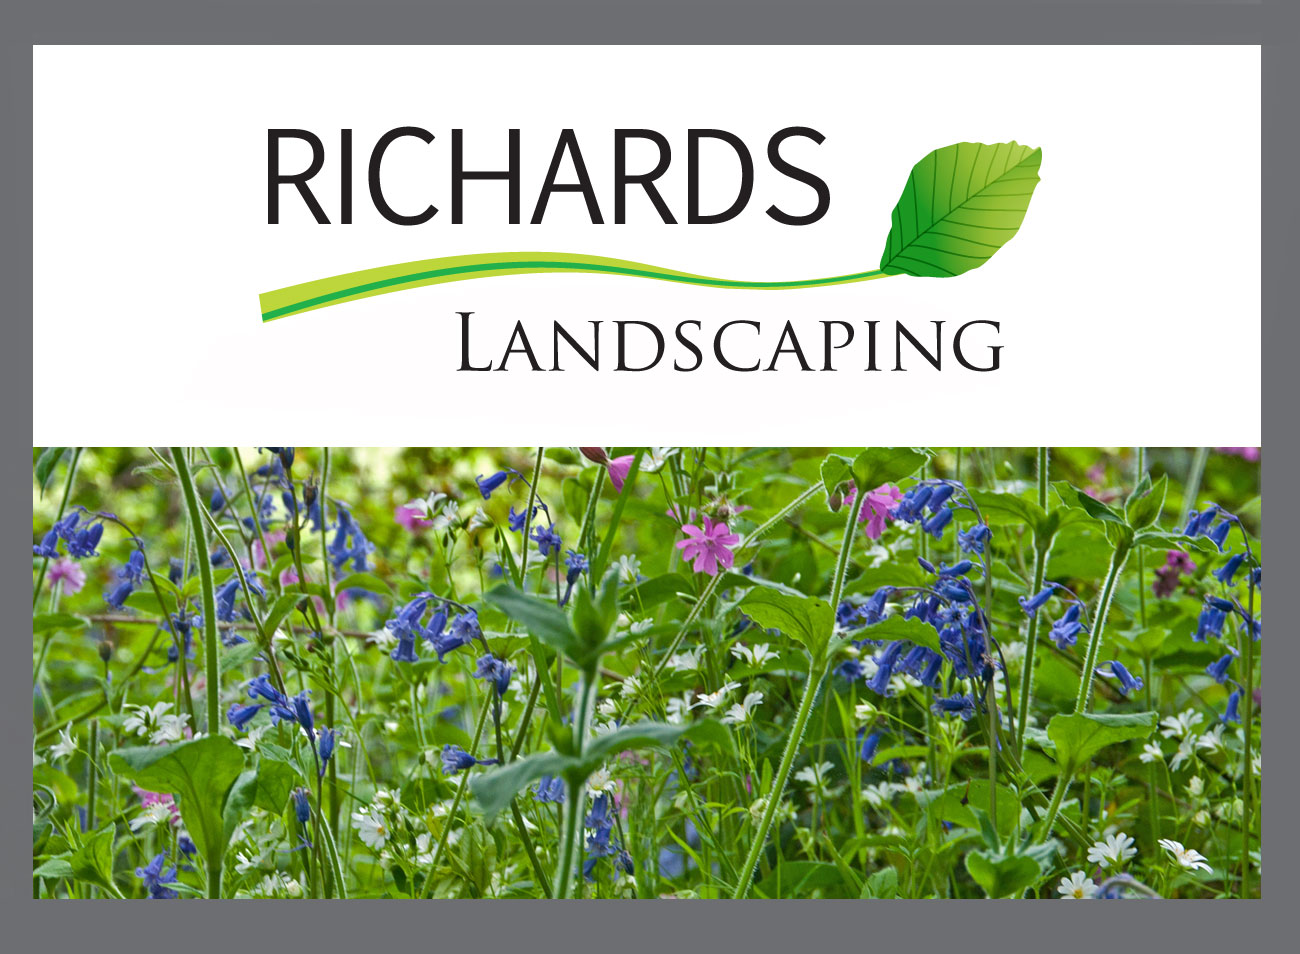 Richards-Landscaping-Web